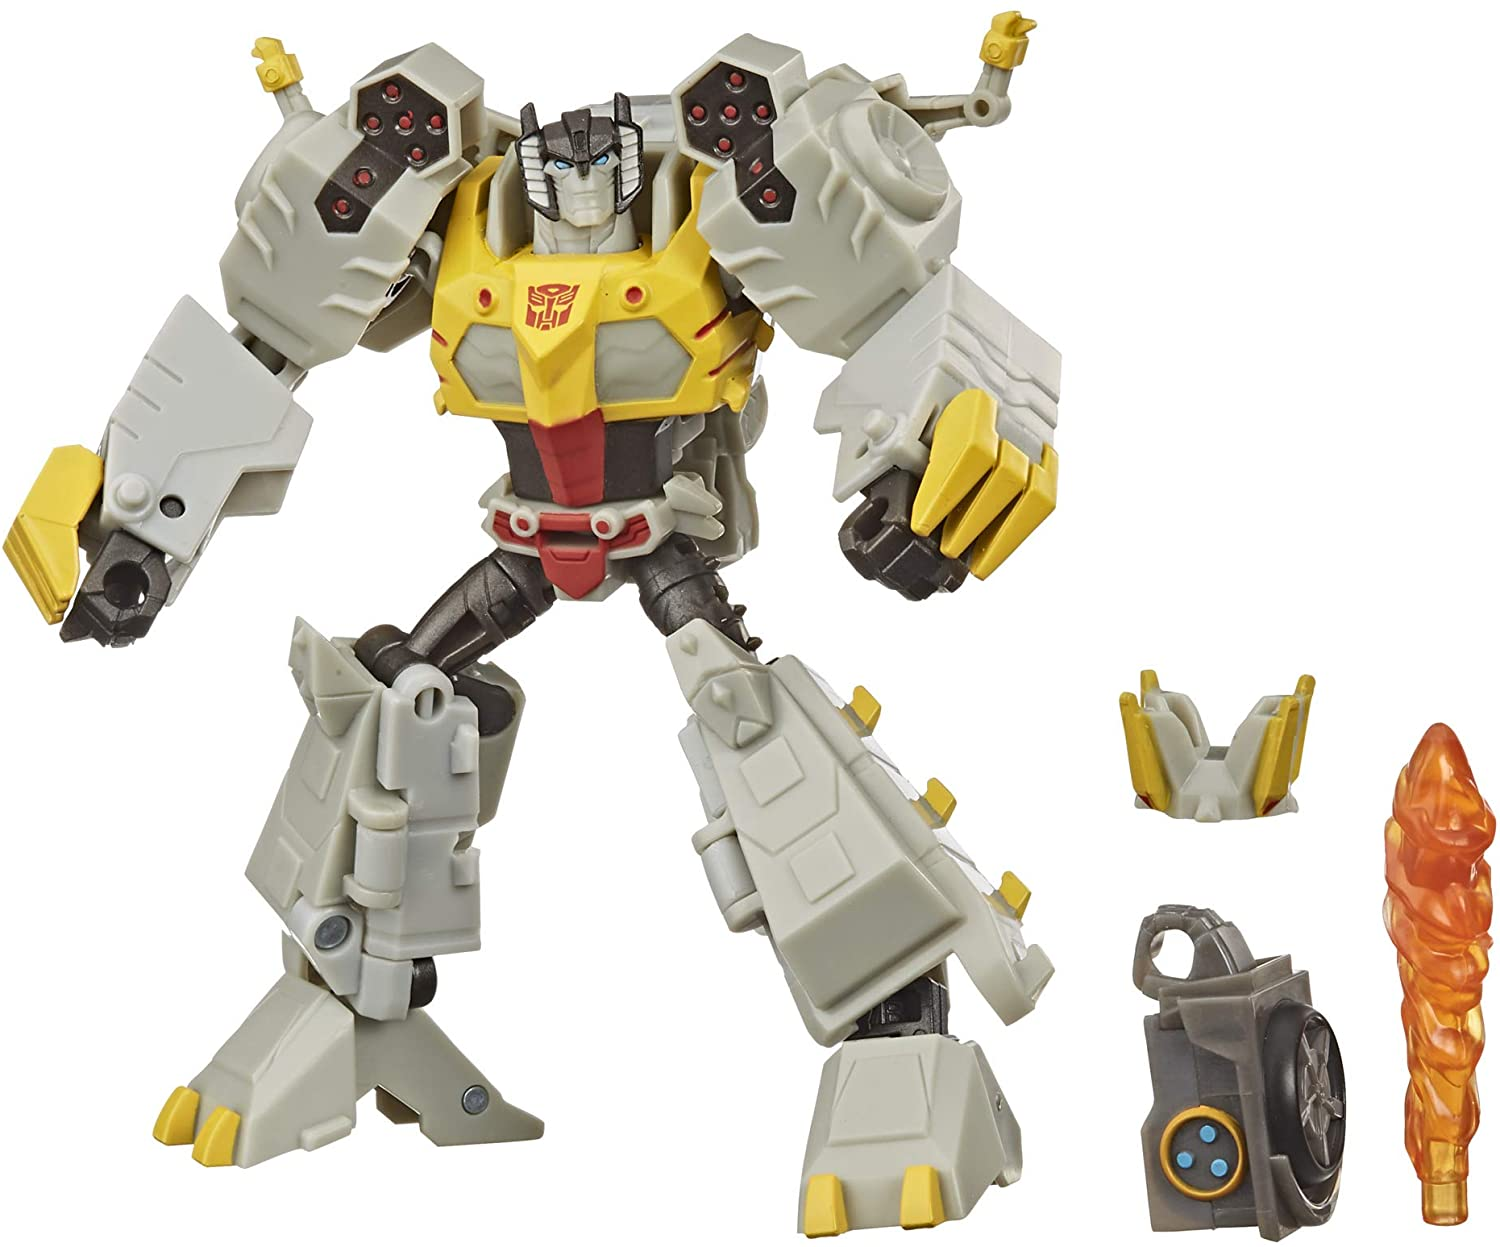 Transformers Bumblebee Cyberverse Adventures Deluxe Class Grimlock Action Figure Toy, Build A Figure Part, For Ages 6 and Up, 5 inch